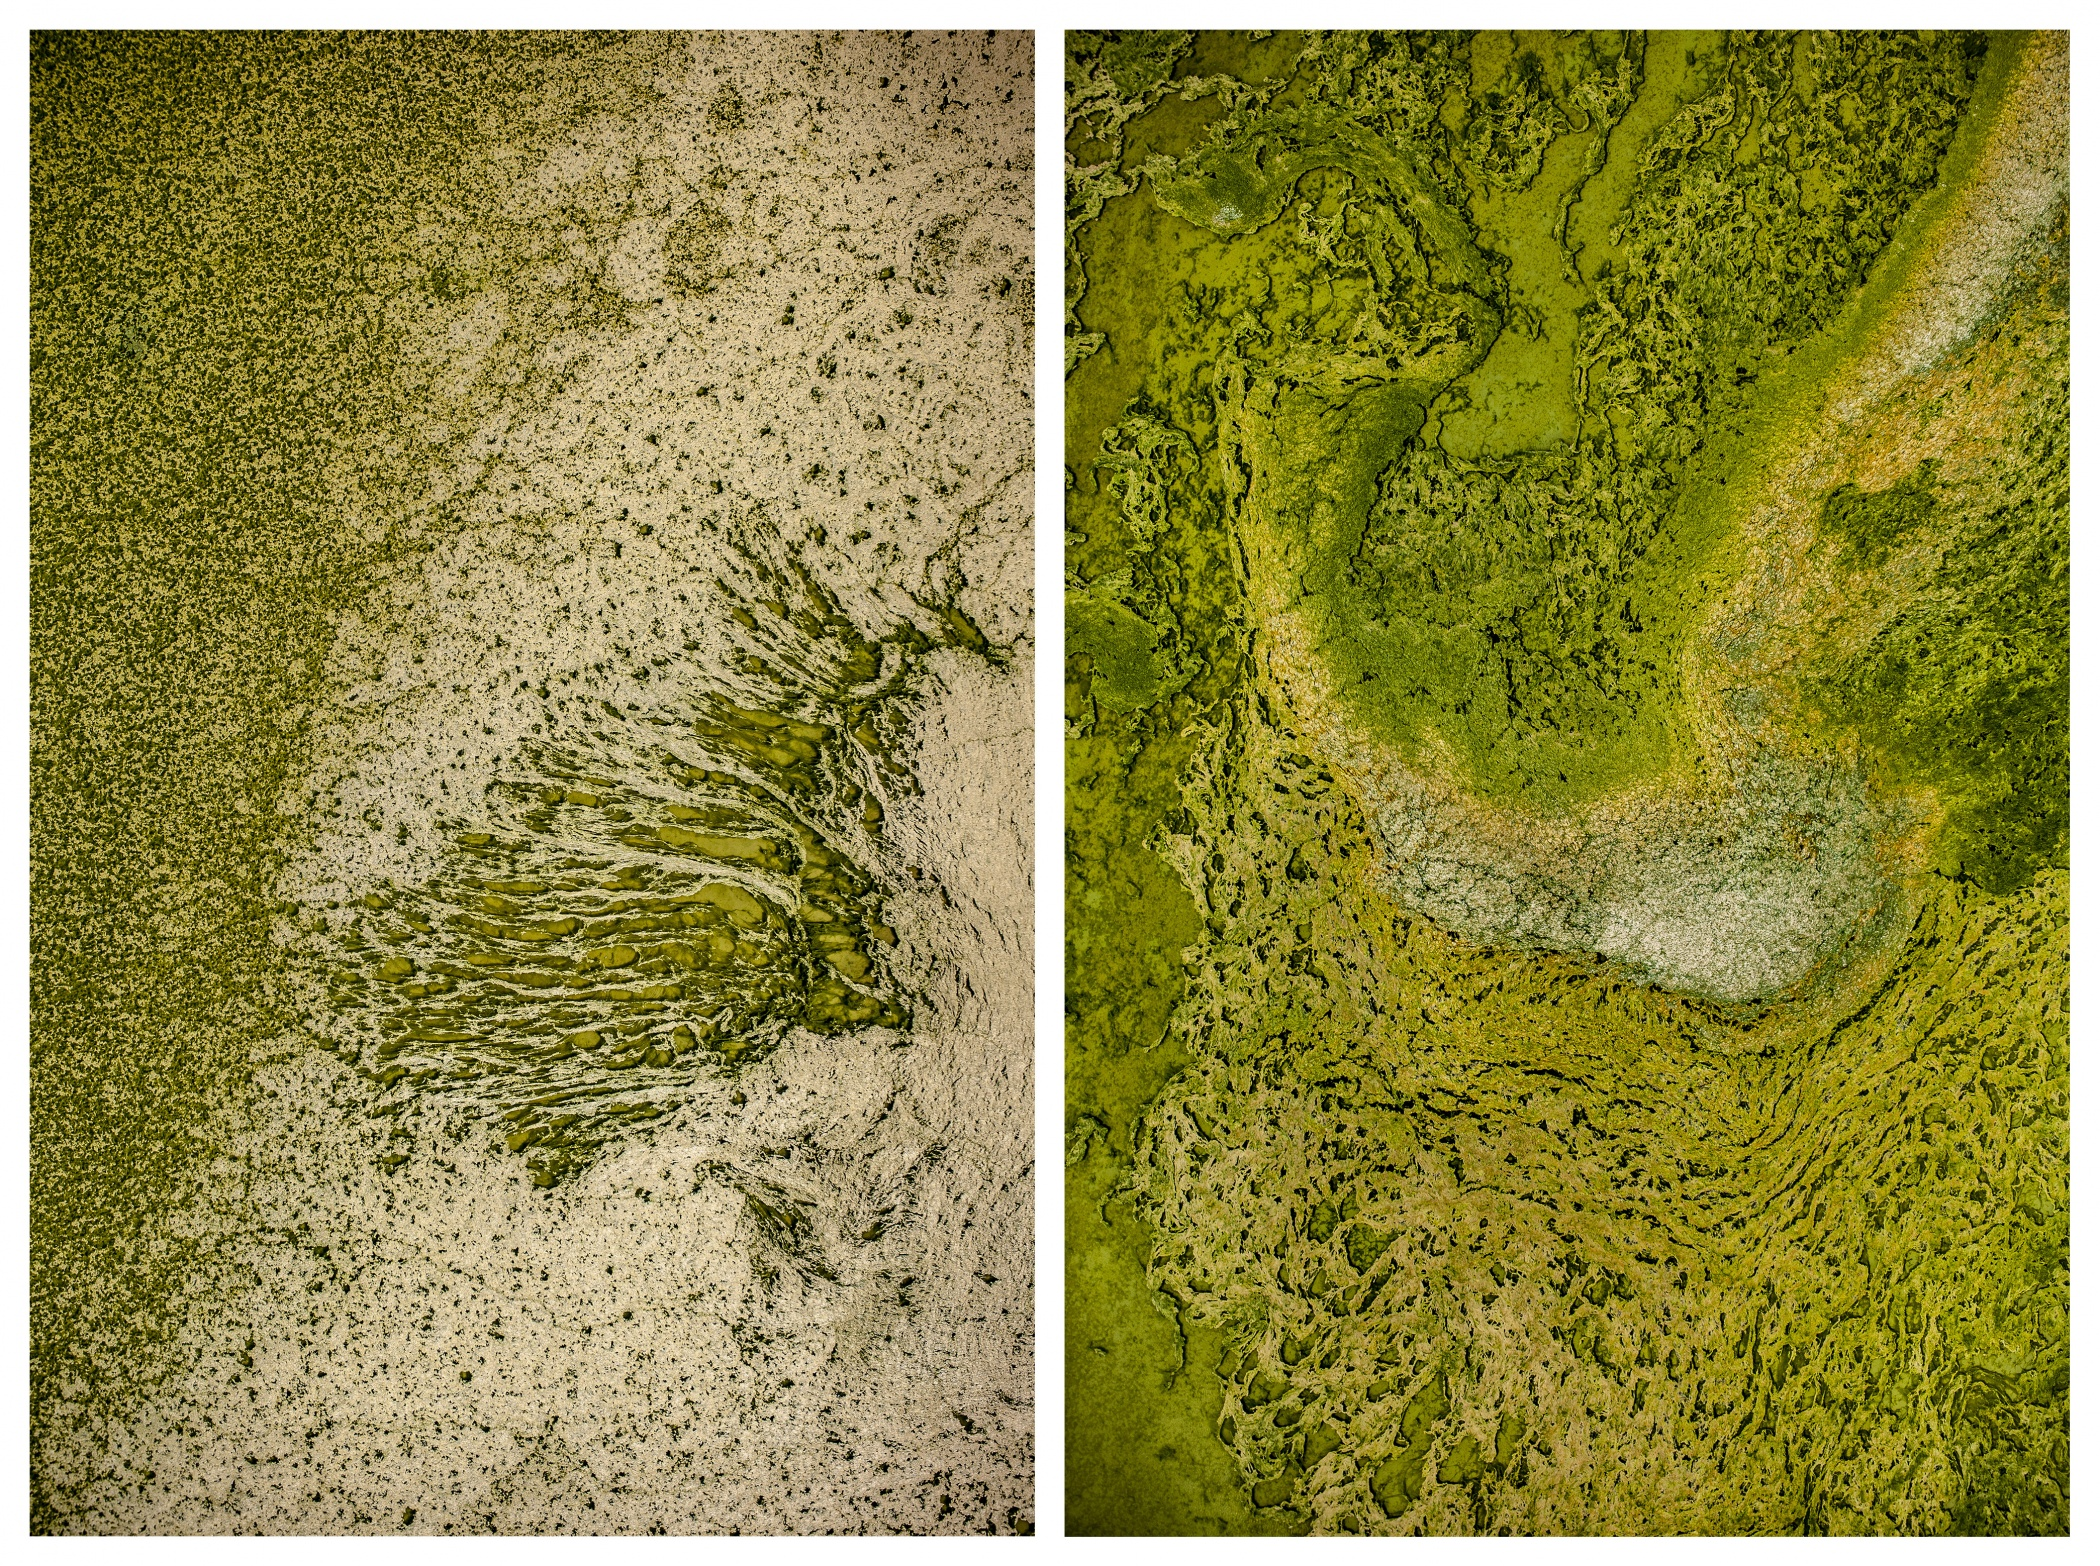 S2D - The end of the sky - Hector Garrido, Aerial and human photography